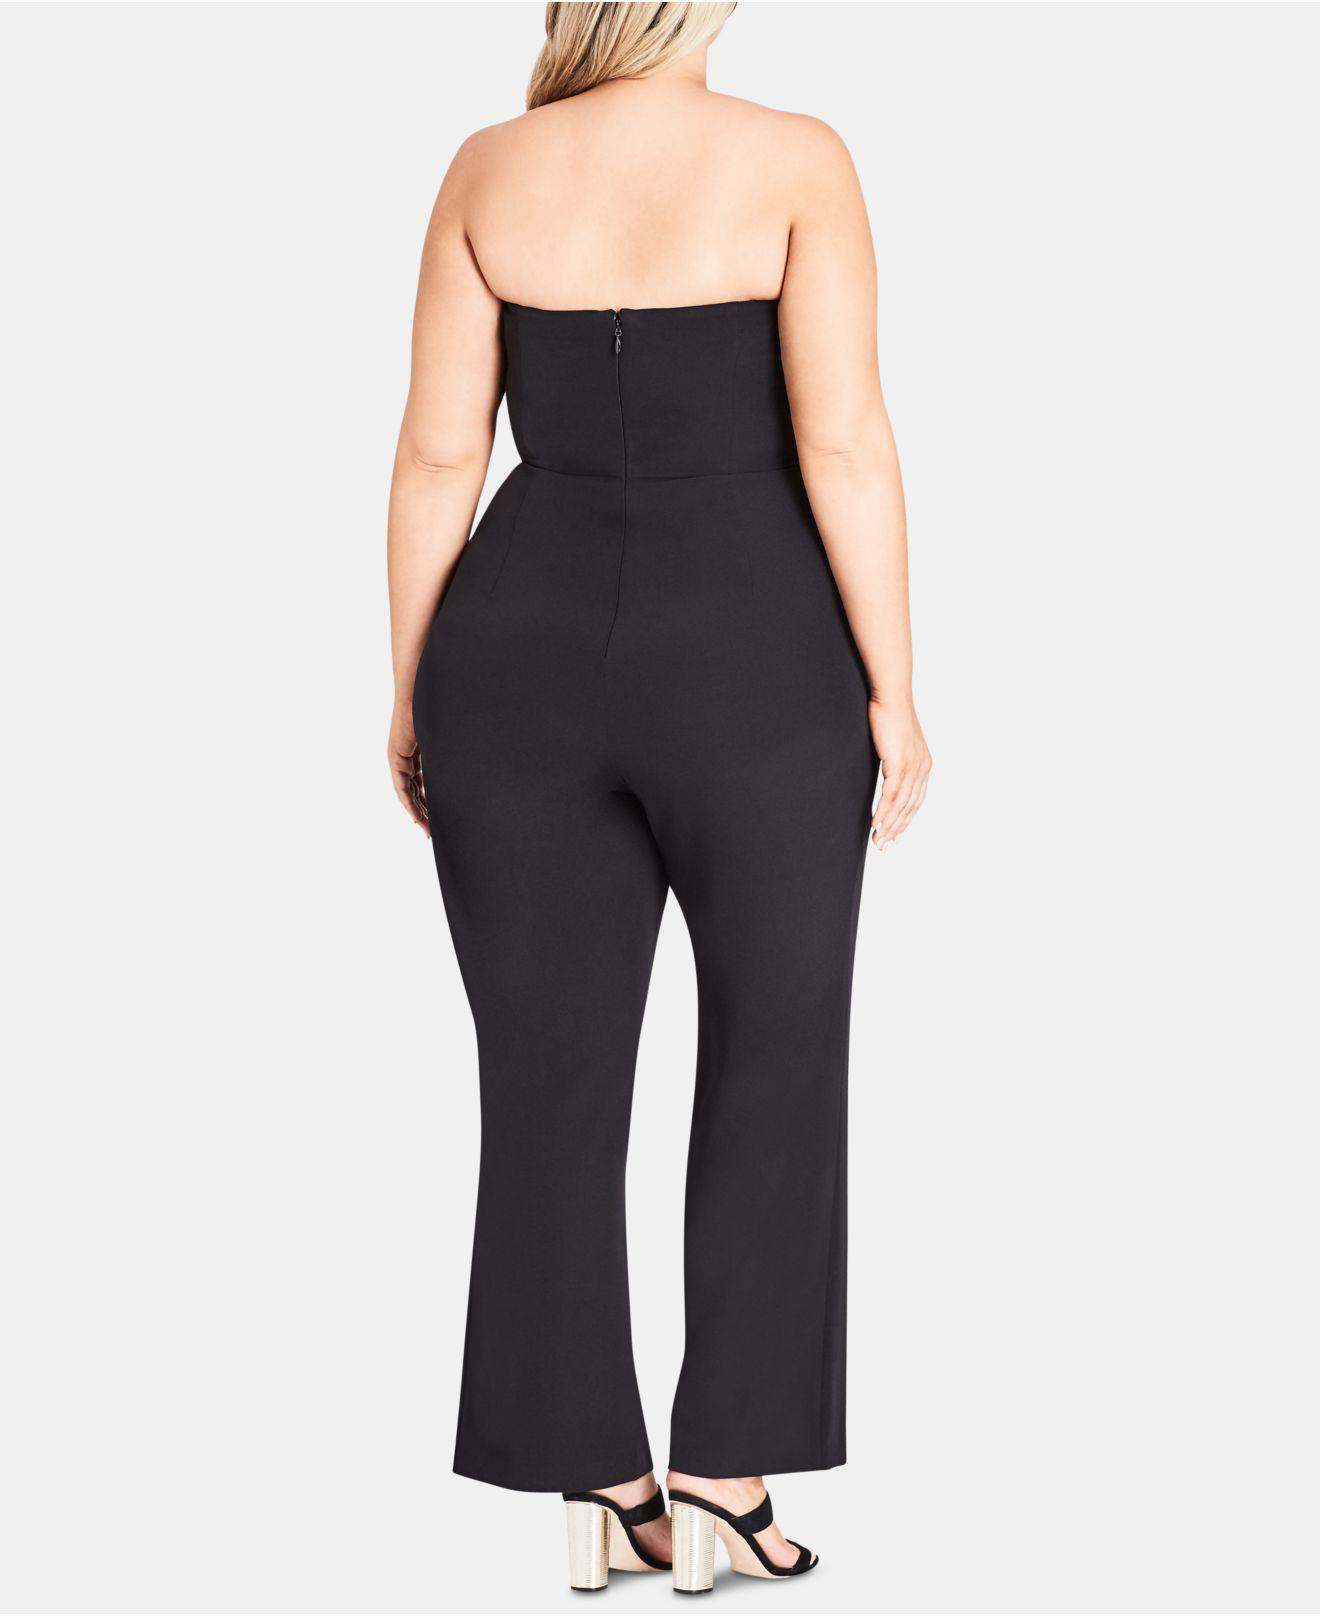 cdb2468138 Lyst - City Chic Trendy Plus Size Twister Jumpsuit in Black